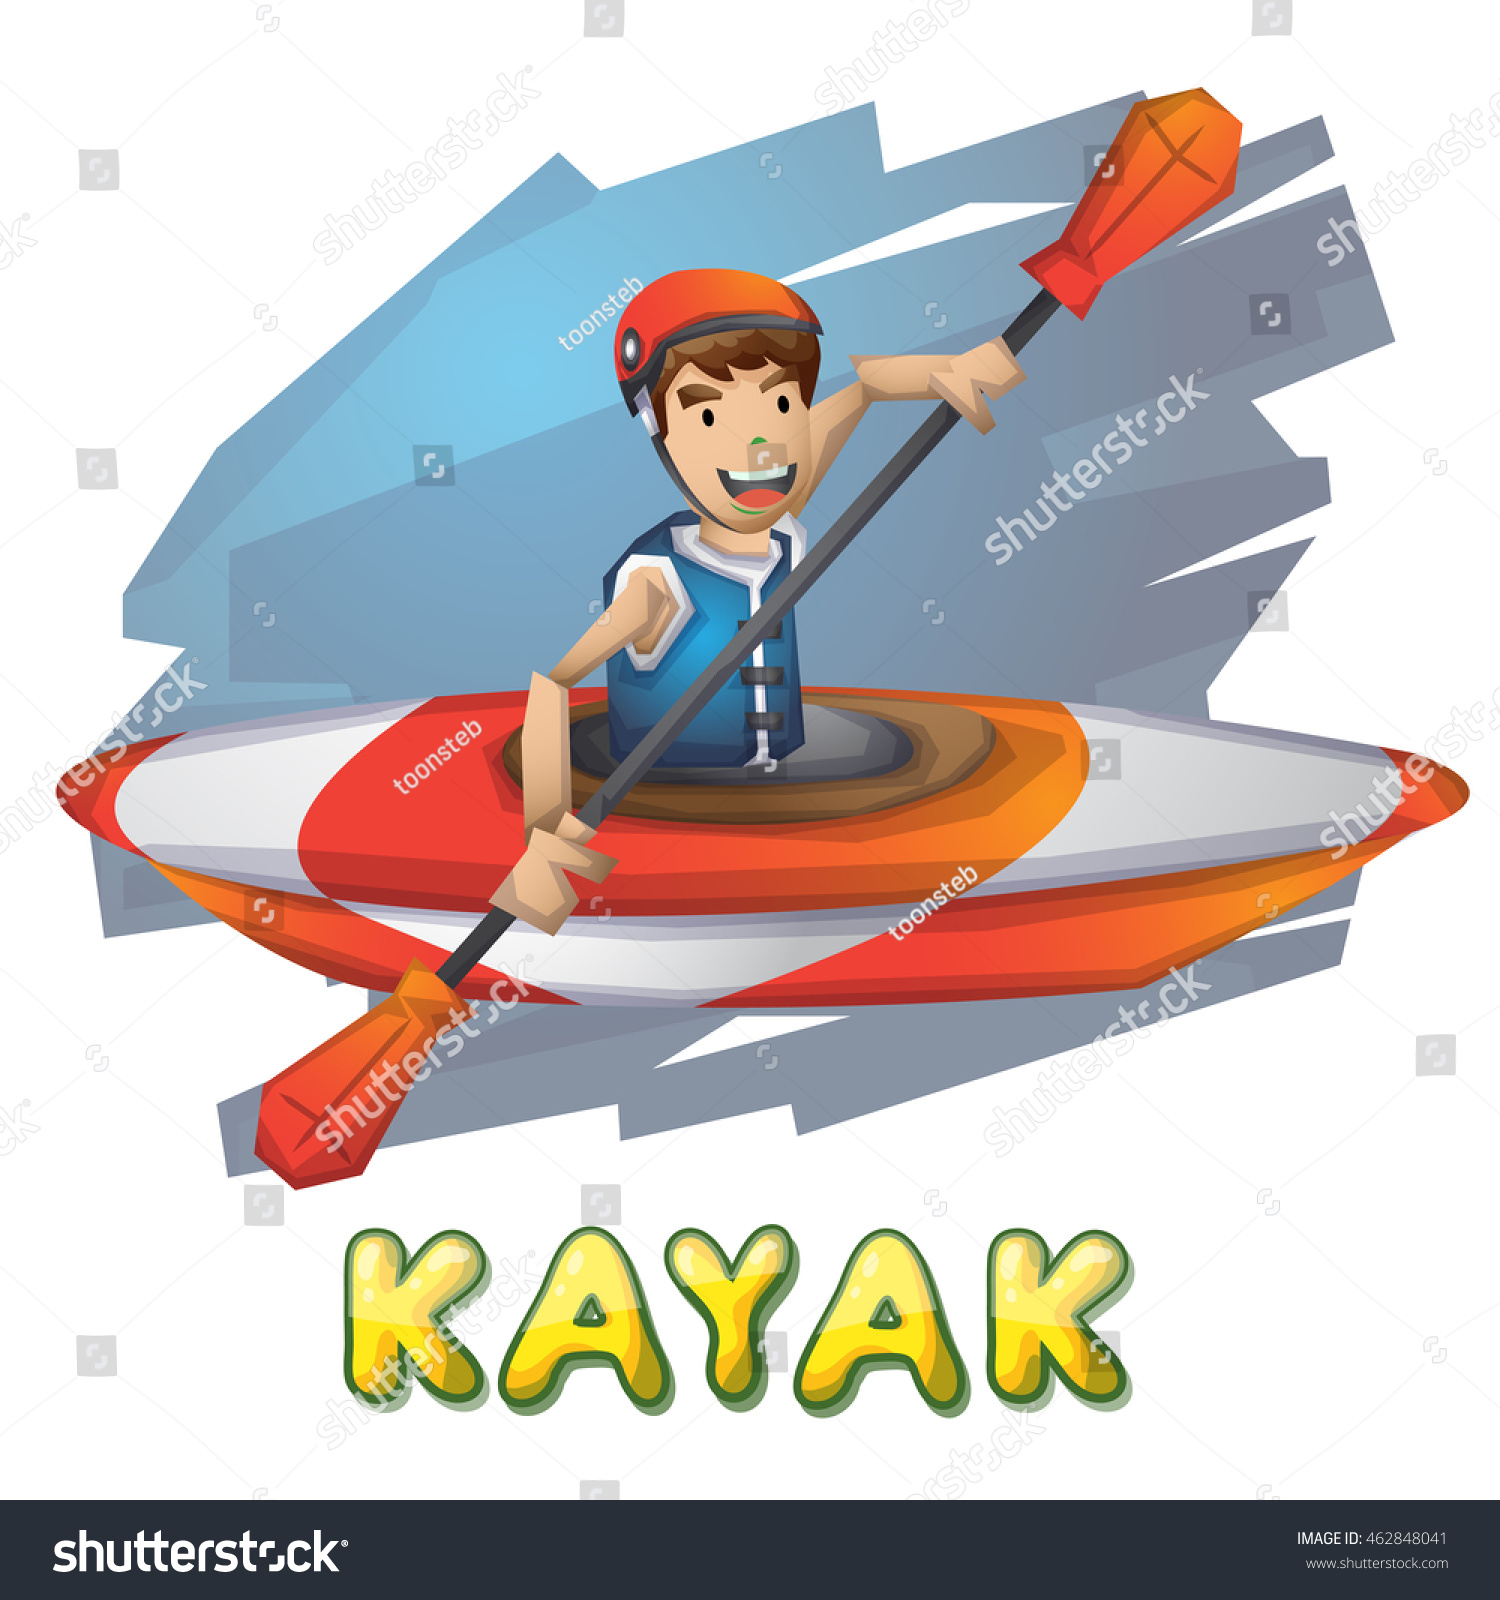 Sieger Clipart Funny Kayak Cartoons Best Car 2018